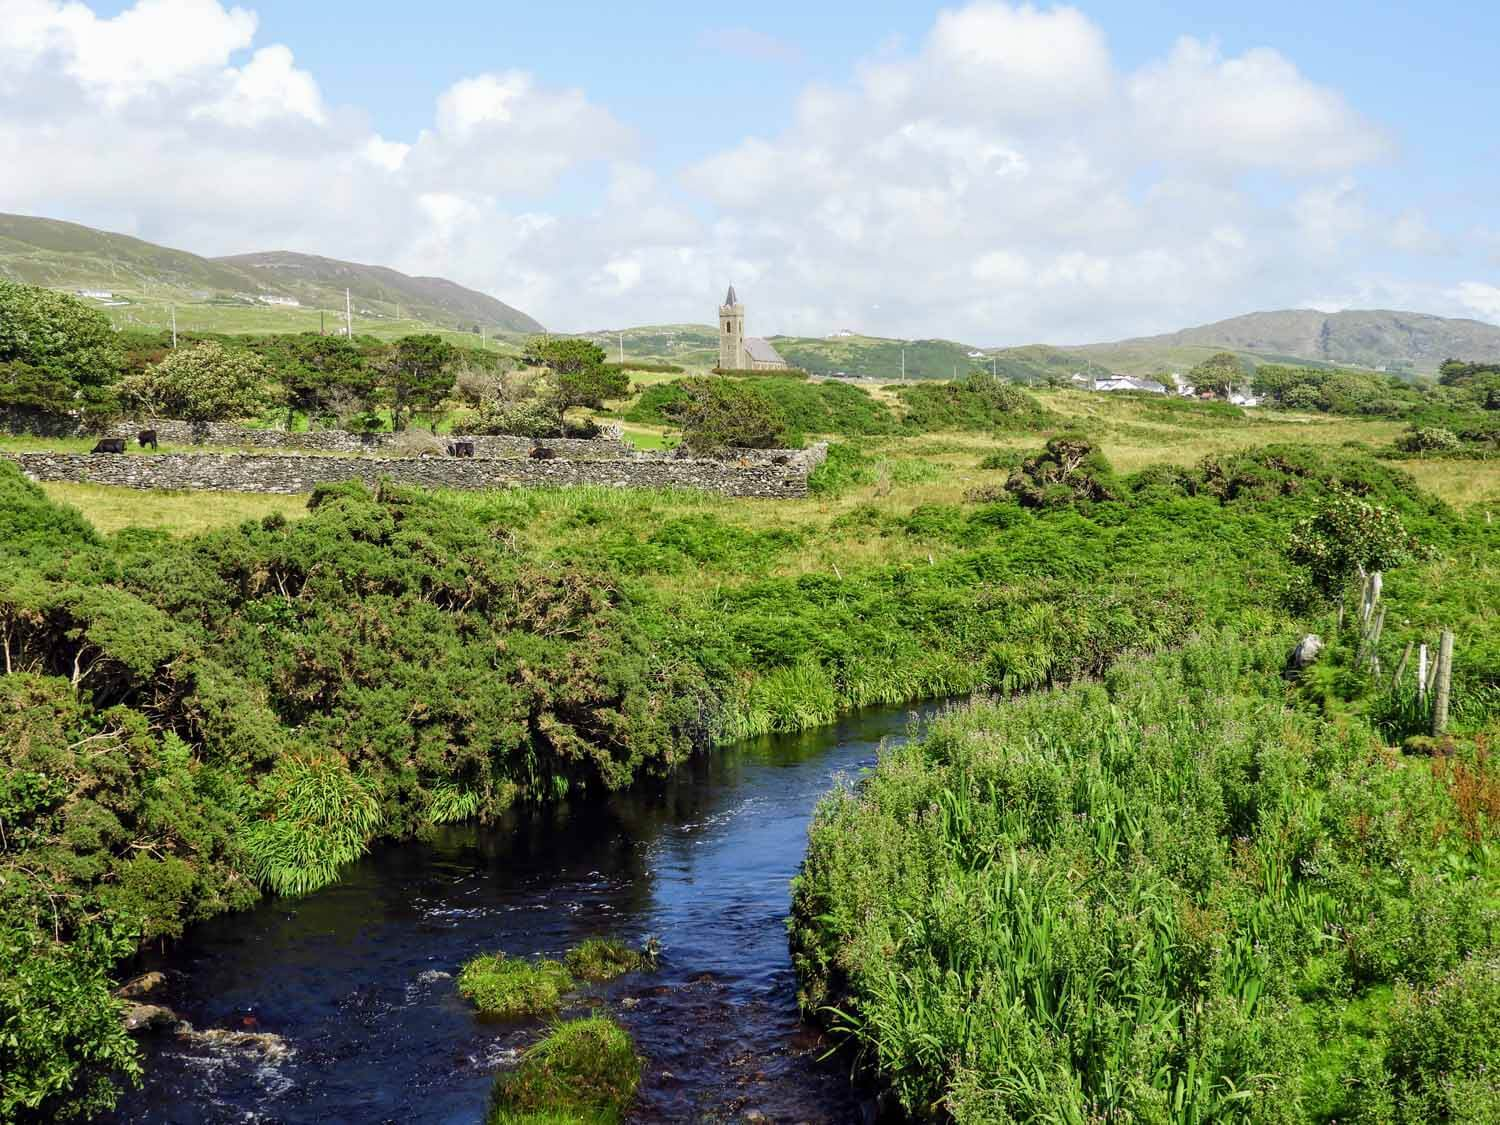 ireland-donegal-glencolumbkille-gleann-cholm-cille-stream-church.jpg